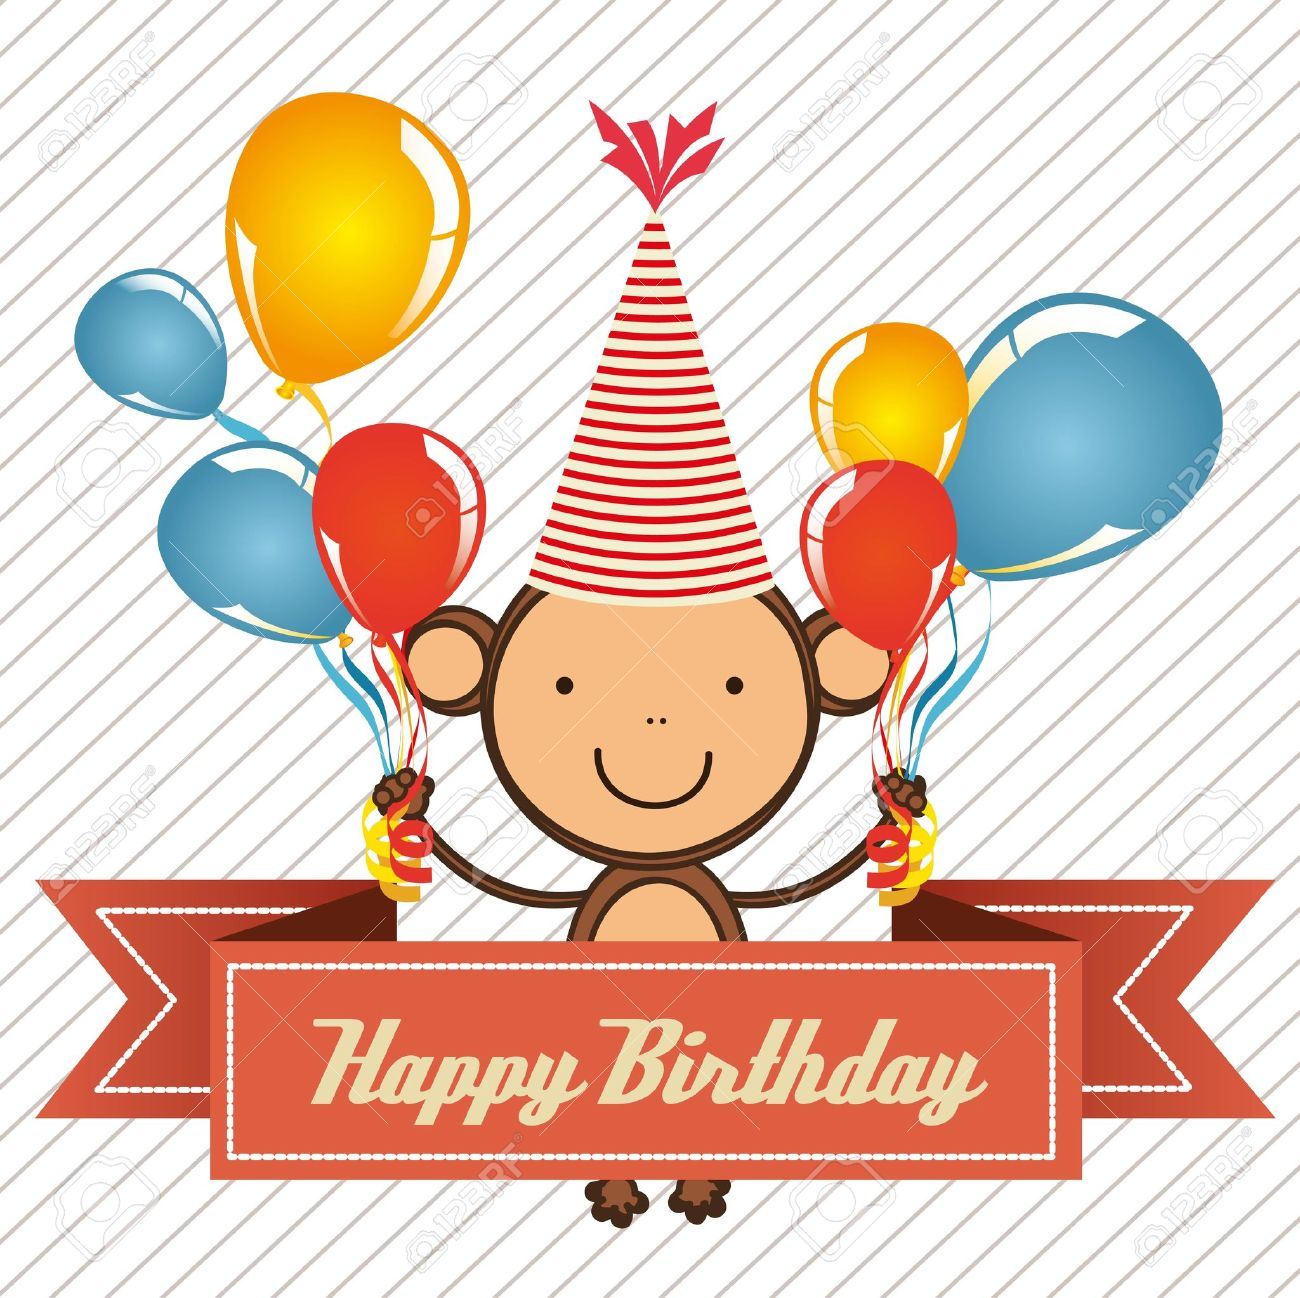 vintage birthday card with monkey and balloons,  illustration Stock Vector - 14473010